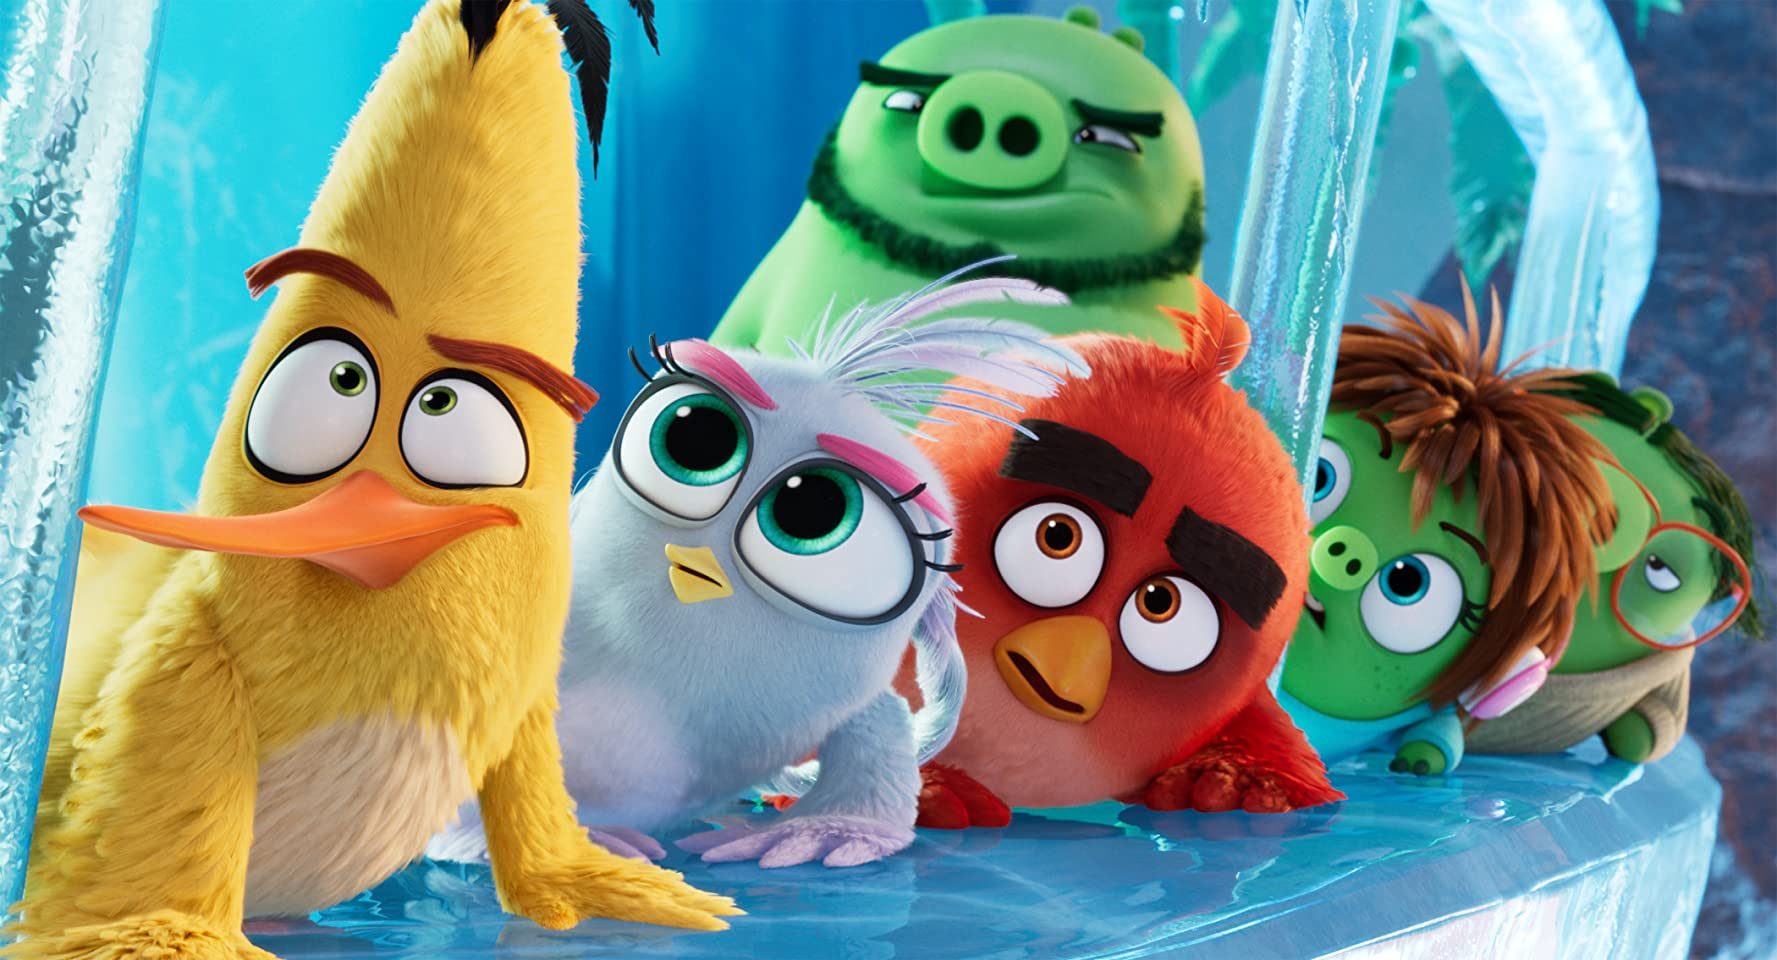 Bill Hader, Jason Sudeikis, Sterling K. Brown, Josh Gad, Rachel Bloom, and Awkwafina in The Angry Birds Movie 2 (2019)